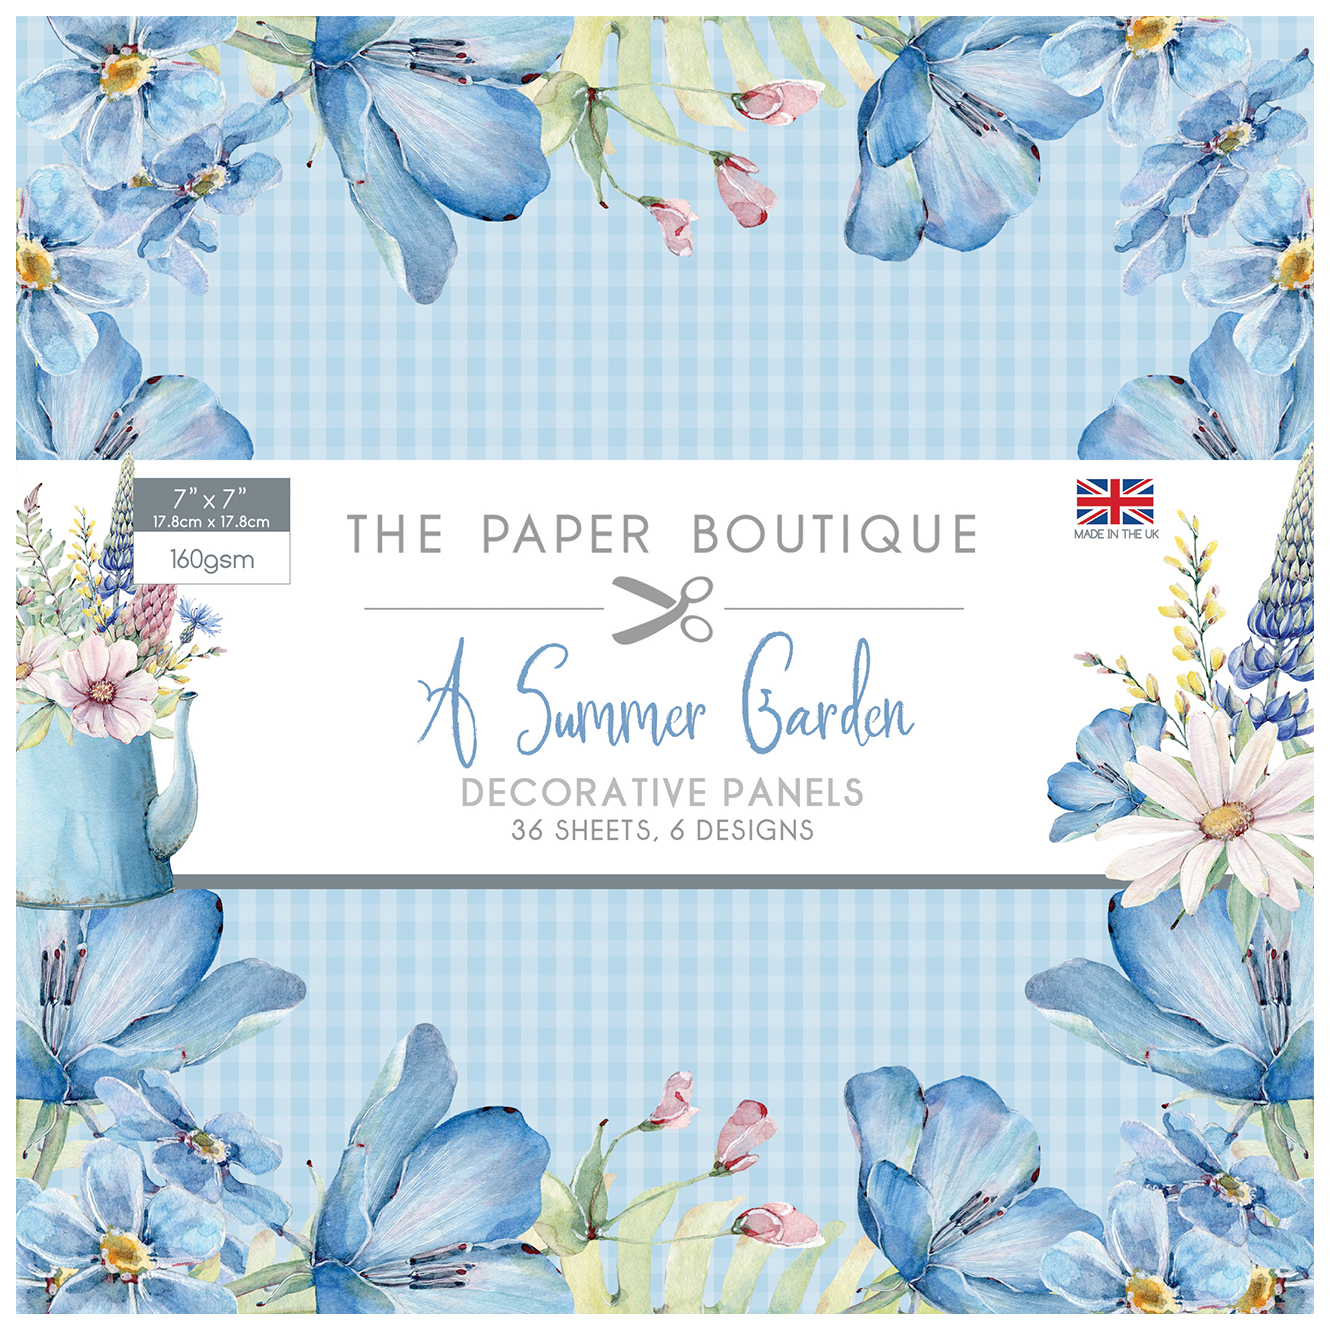 LUCKY DIP – The Paper Boutique 7″ x 7″  Panel Pad